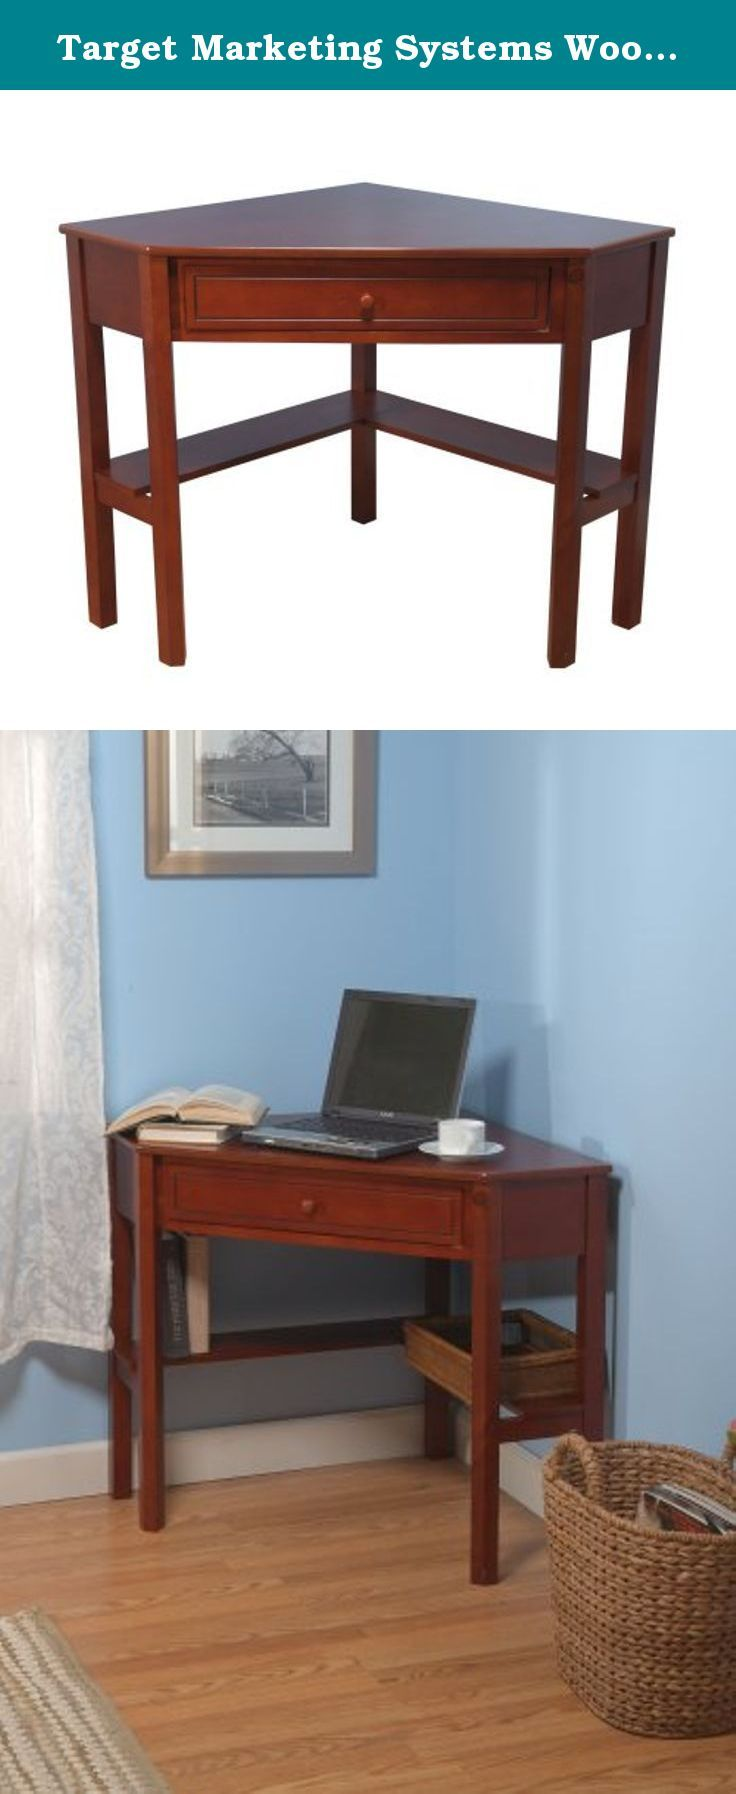 Target Marketing Systems Wood Corner Desk with One Drawer and One ...